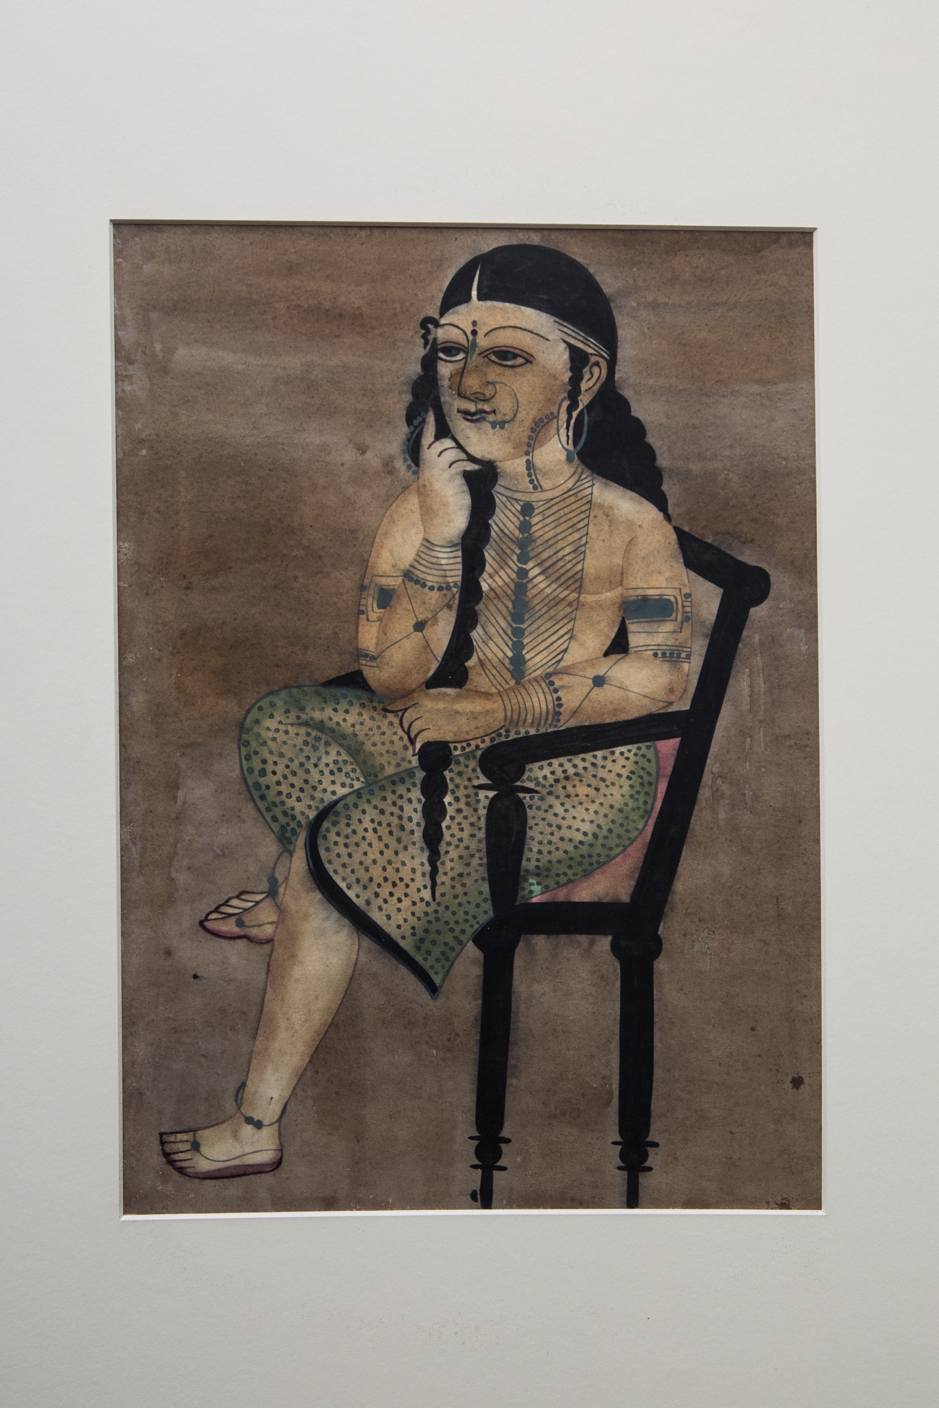 Fig 3. Kalighat paintings began to lose patronage in the early twentieth century when cheap prints filled the markets. This is a very common anonymous Kalighat painting which shows a woman sitting on a chair and thinking (Photo courtesy: Darshan Shah/Weavers Studio Research Centre, Kolkata)